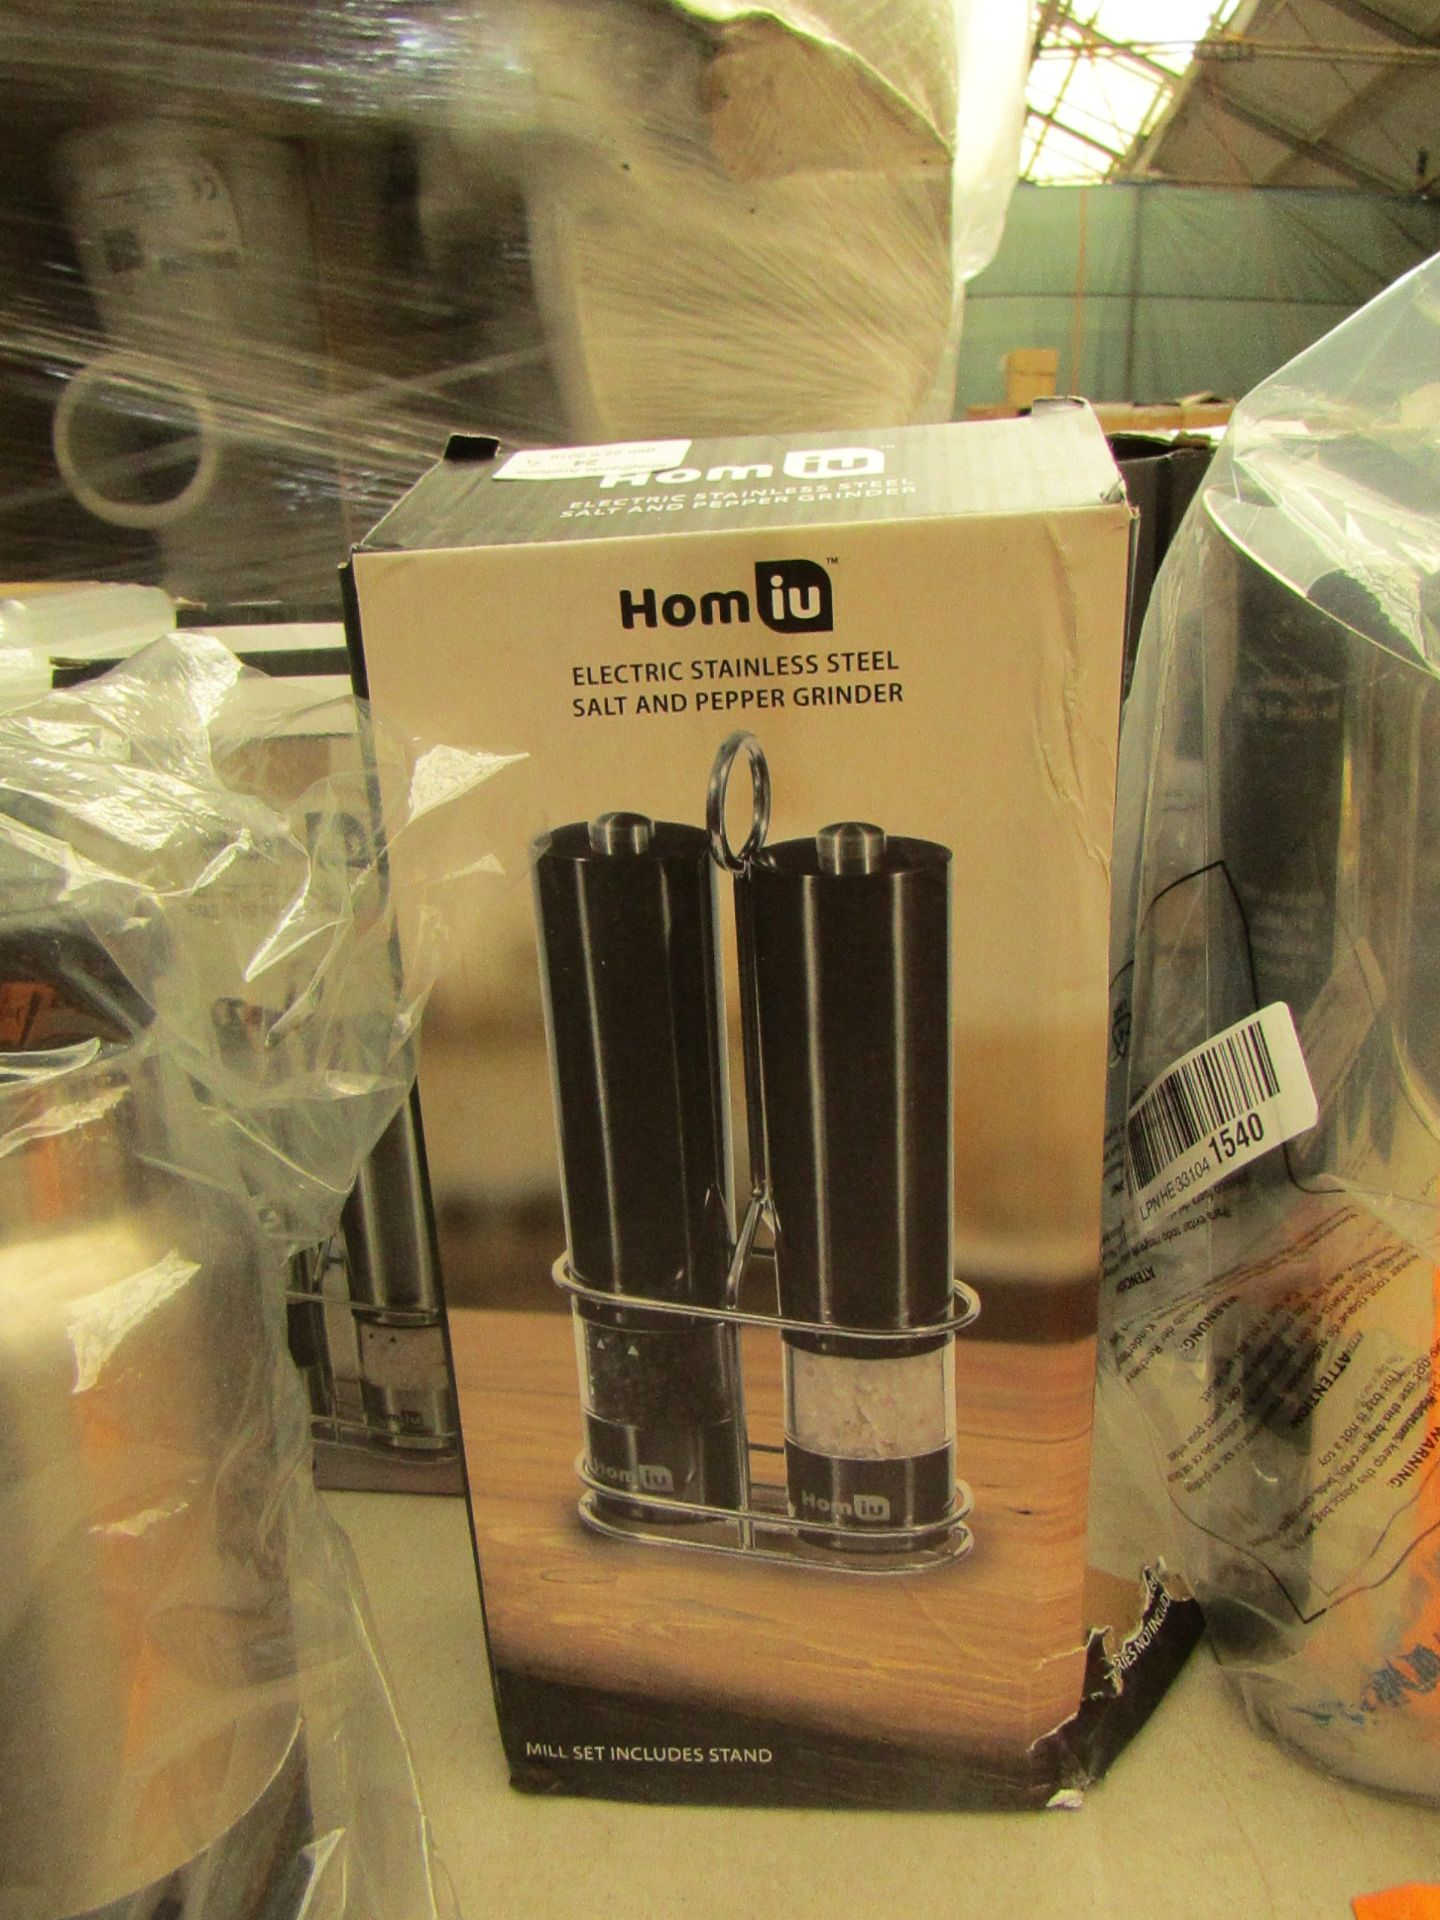 Lotto 24 - Homiu Electric Stainless Steel Salt and Pepper Grinder set in Gunmetal . Boxed